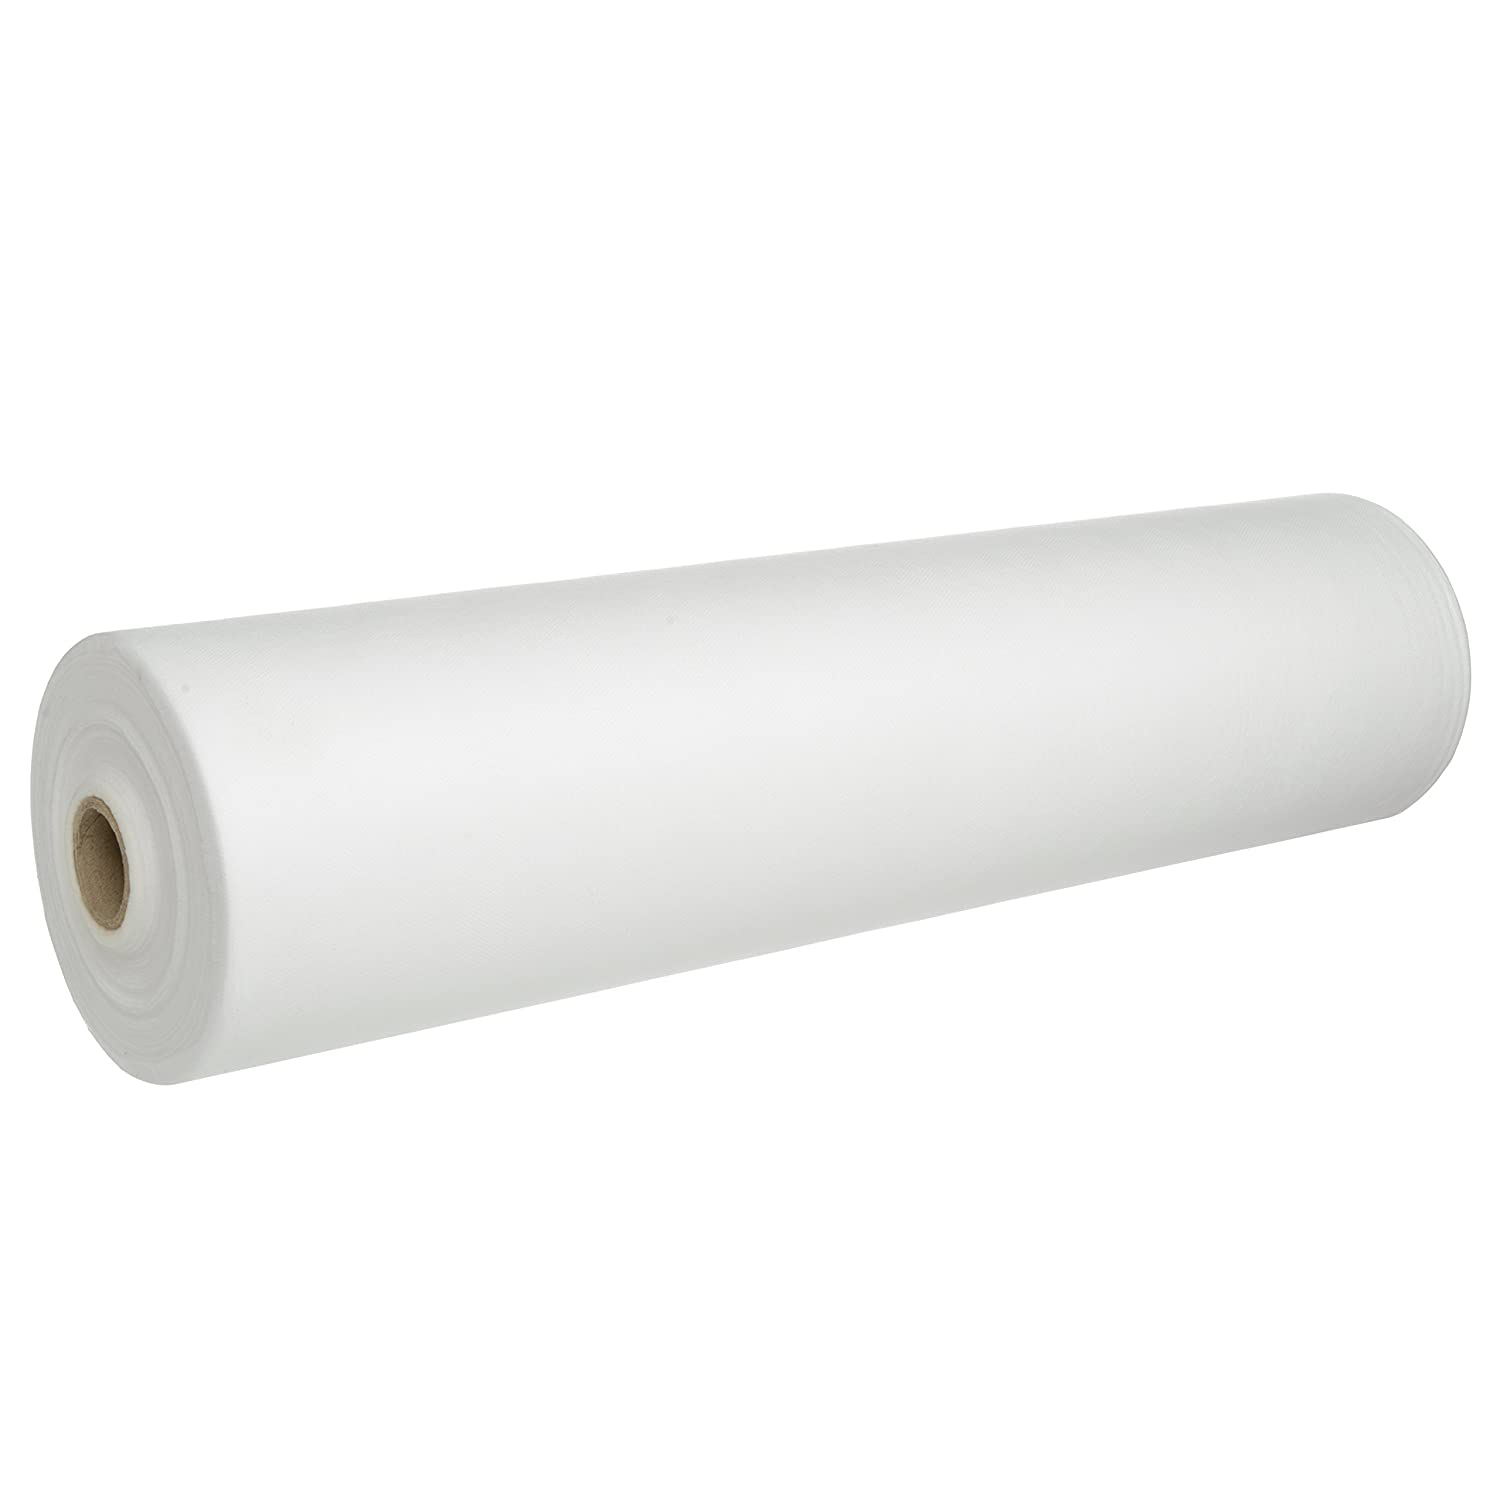 1 Beauty-Spa-Medical Disposable Perforated Bed Non-W Ranking TOP4 Cover Roll 2021 model